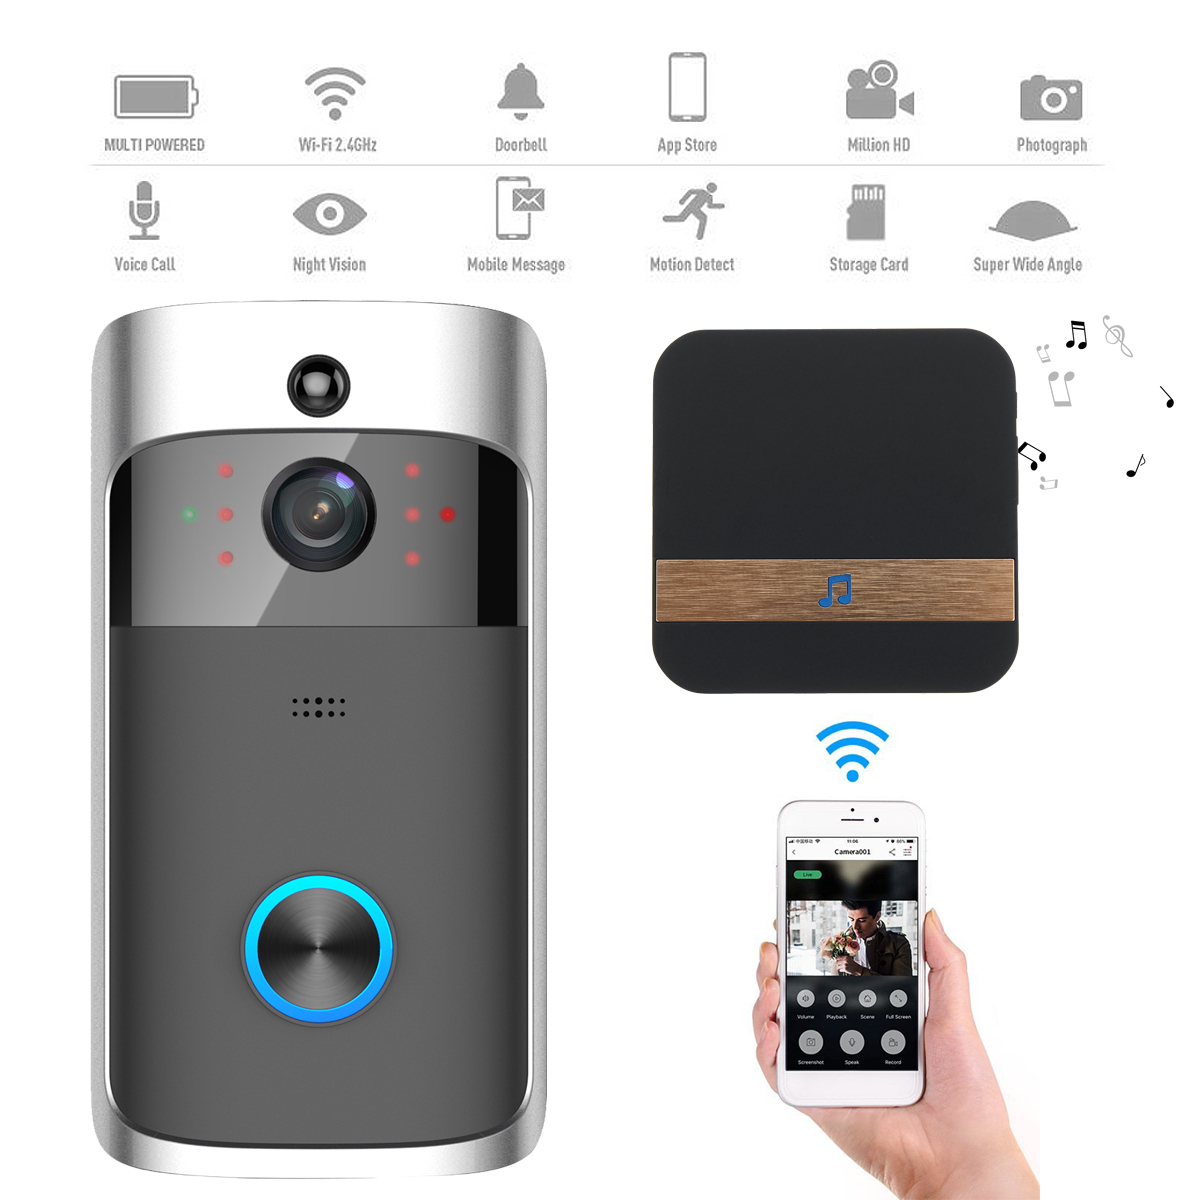 1280*720 p Multi funzione di motion detection campanello Wifi Largo Angeli di Visual campanello Intelligente Senza Fili Kit di Sistema Con Coperta campana